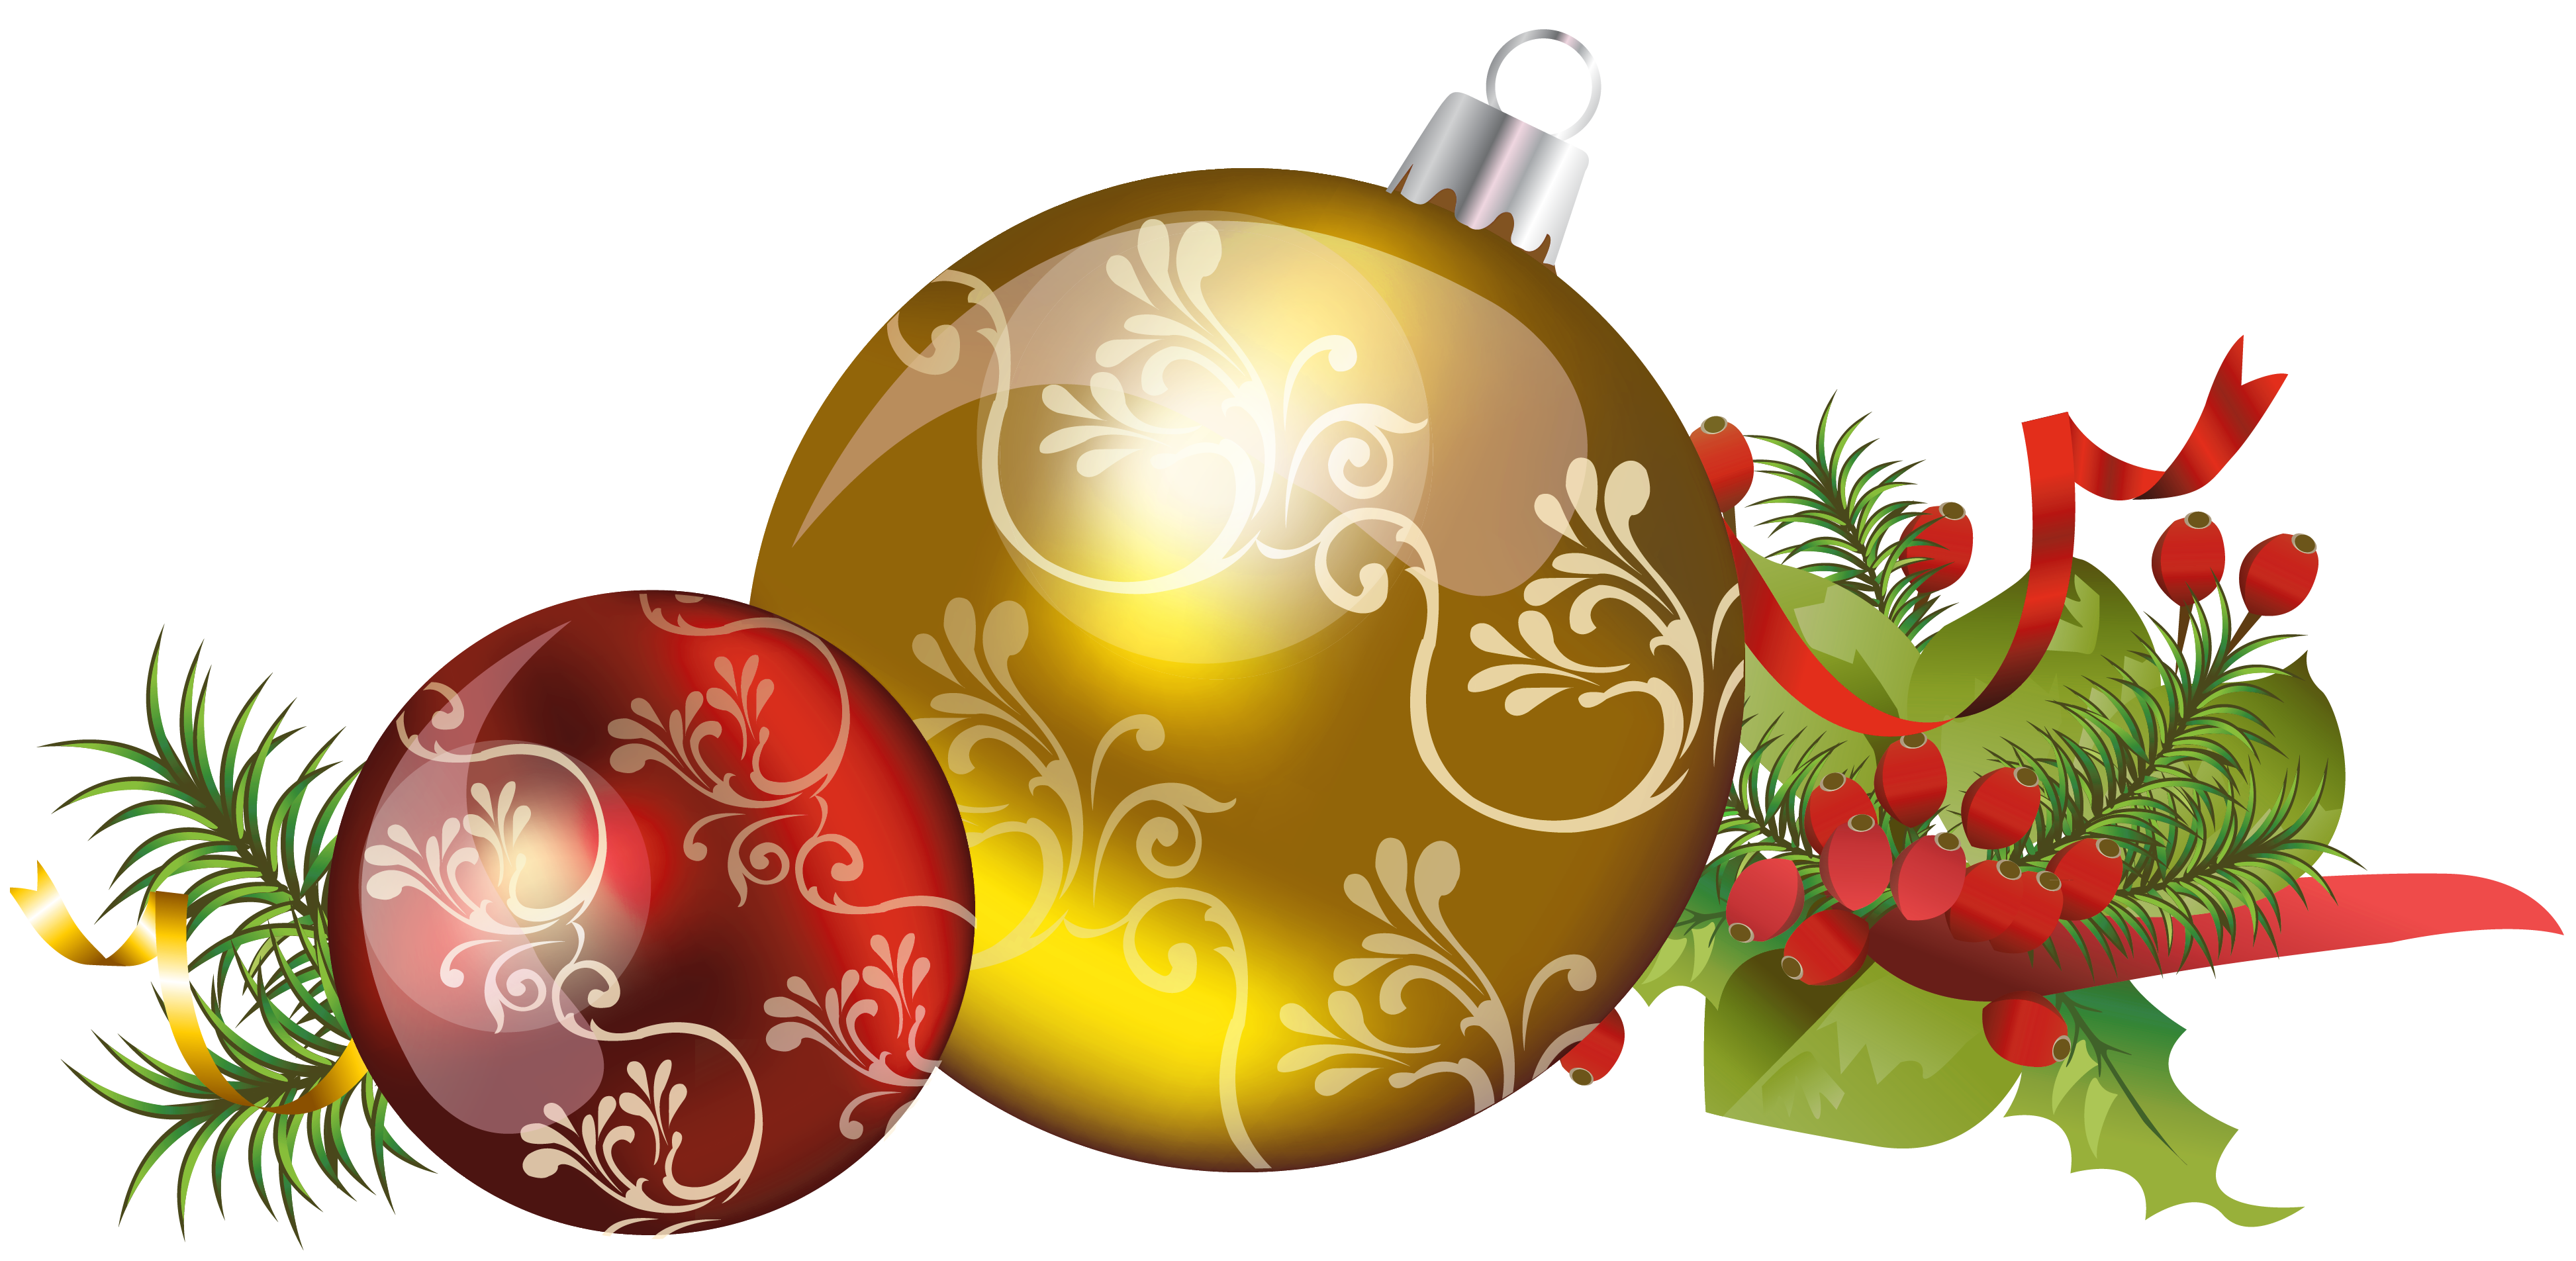 Ornaments christmas png. Ball transparent images all